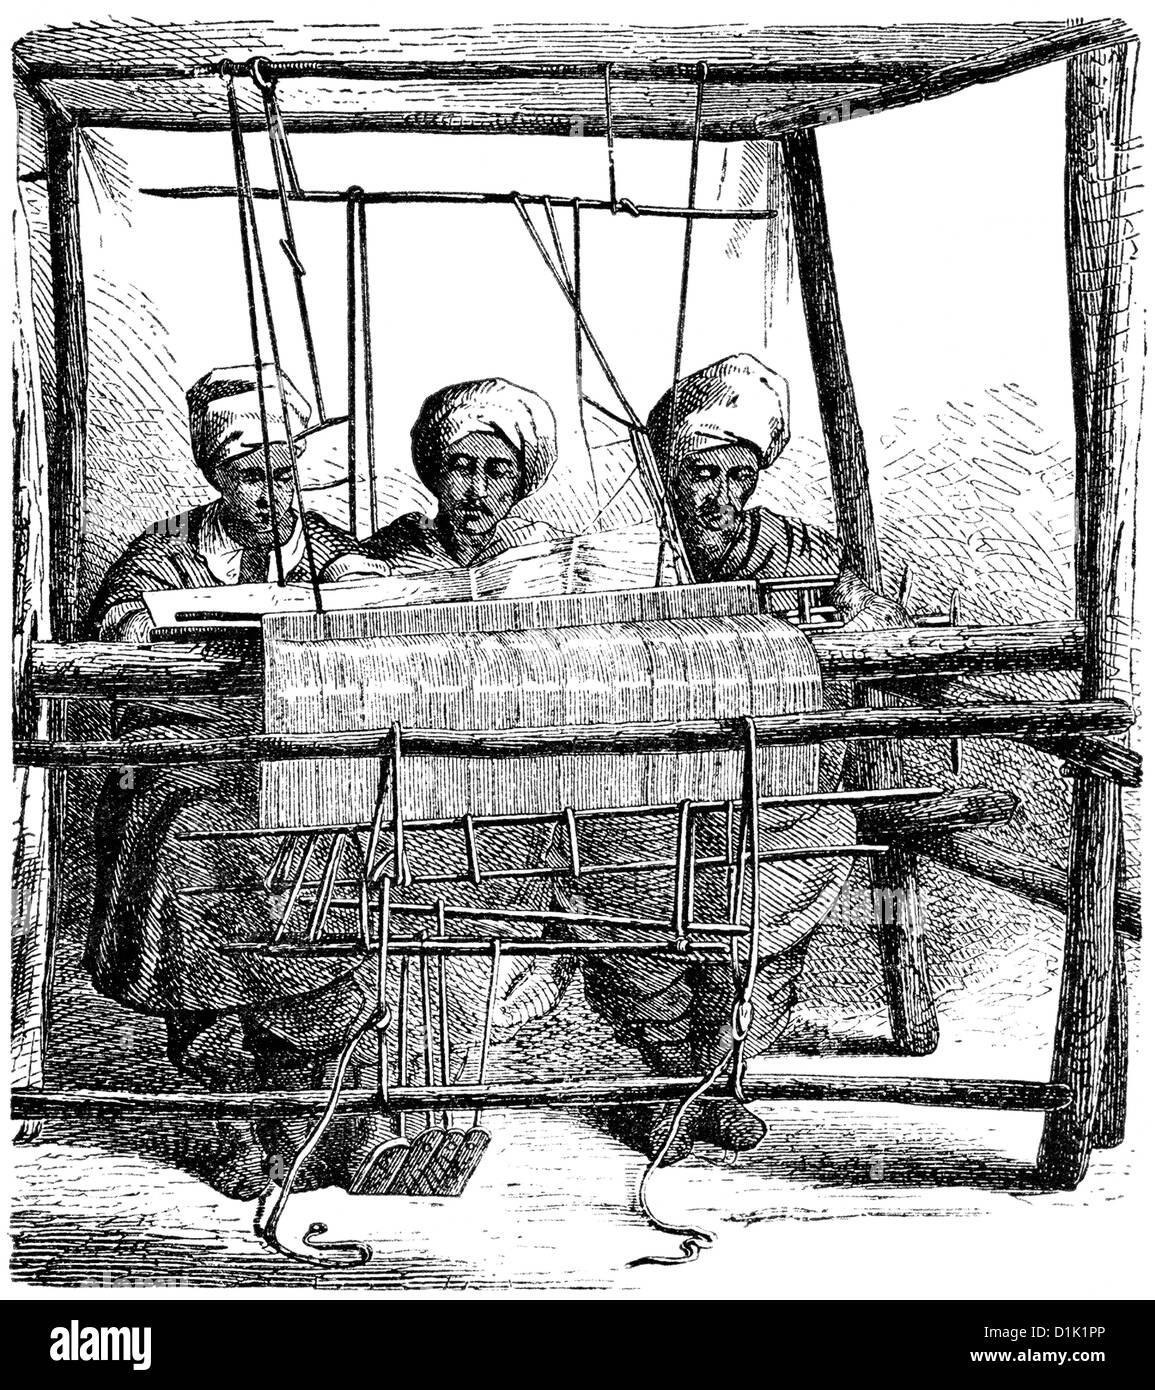 Indian weavers working on a mechanical weaving loom, 18th century - Stock Image